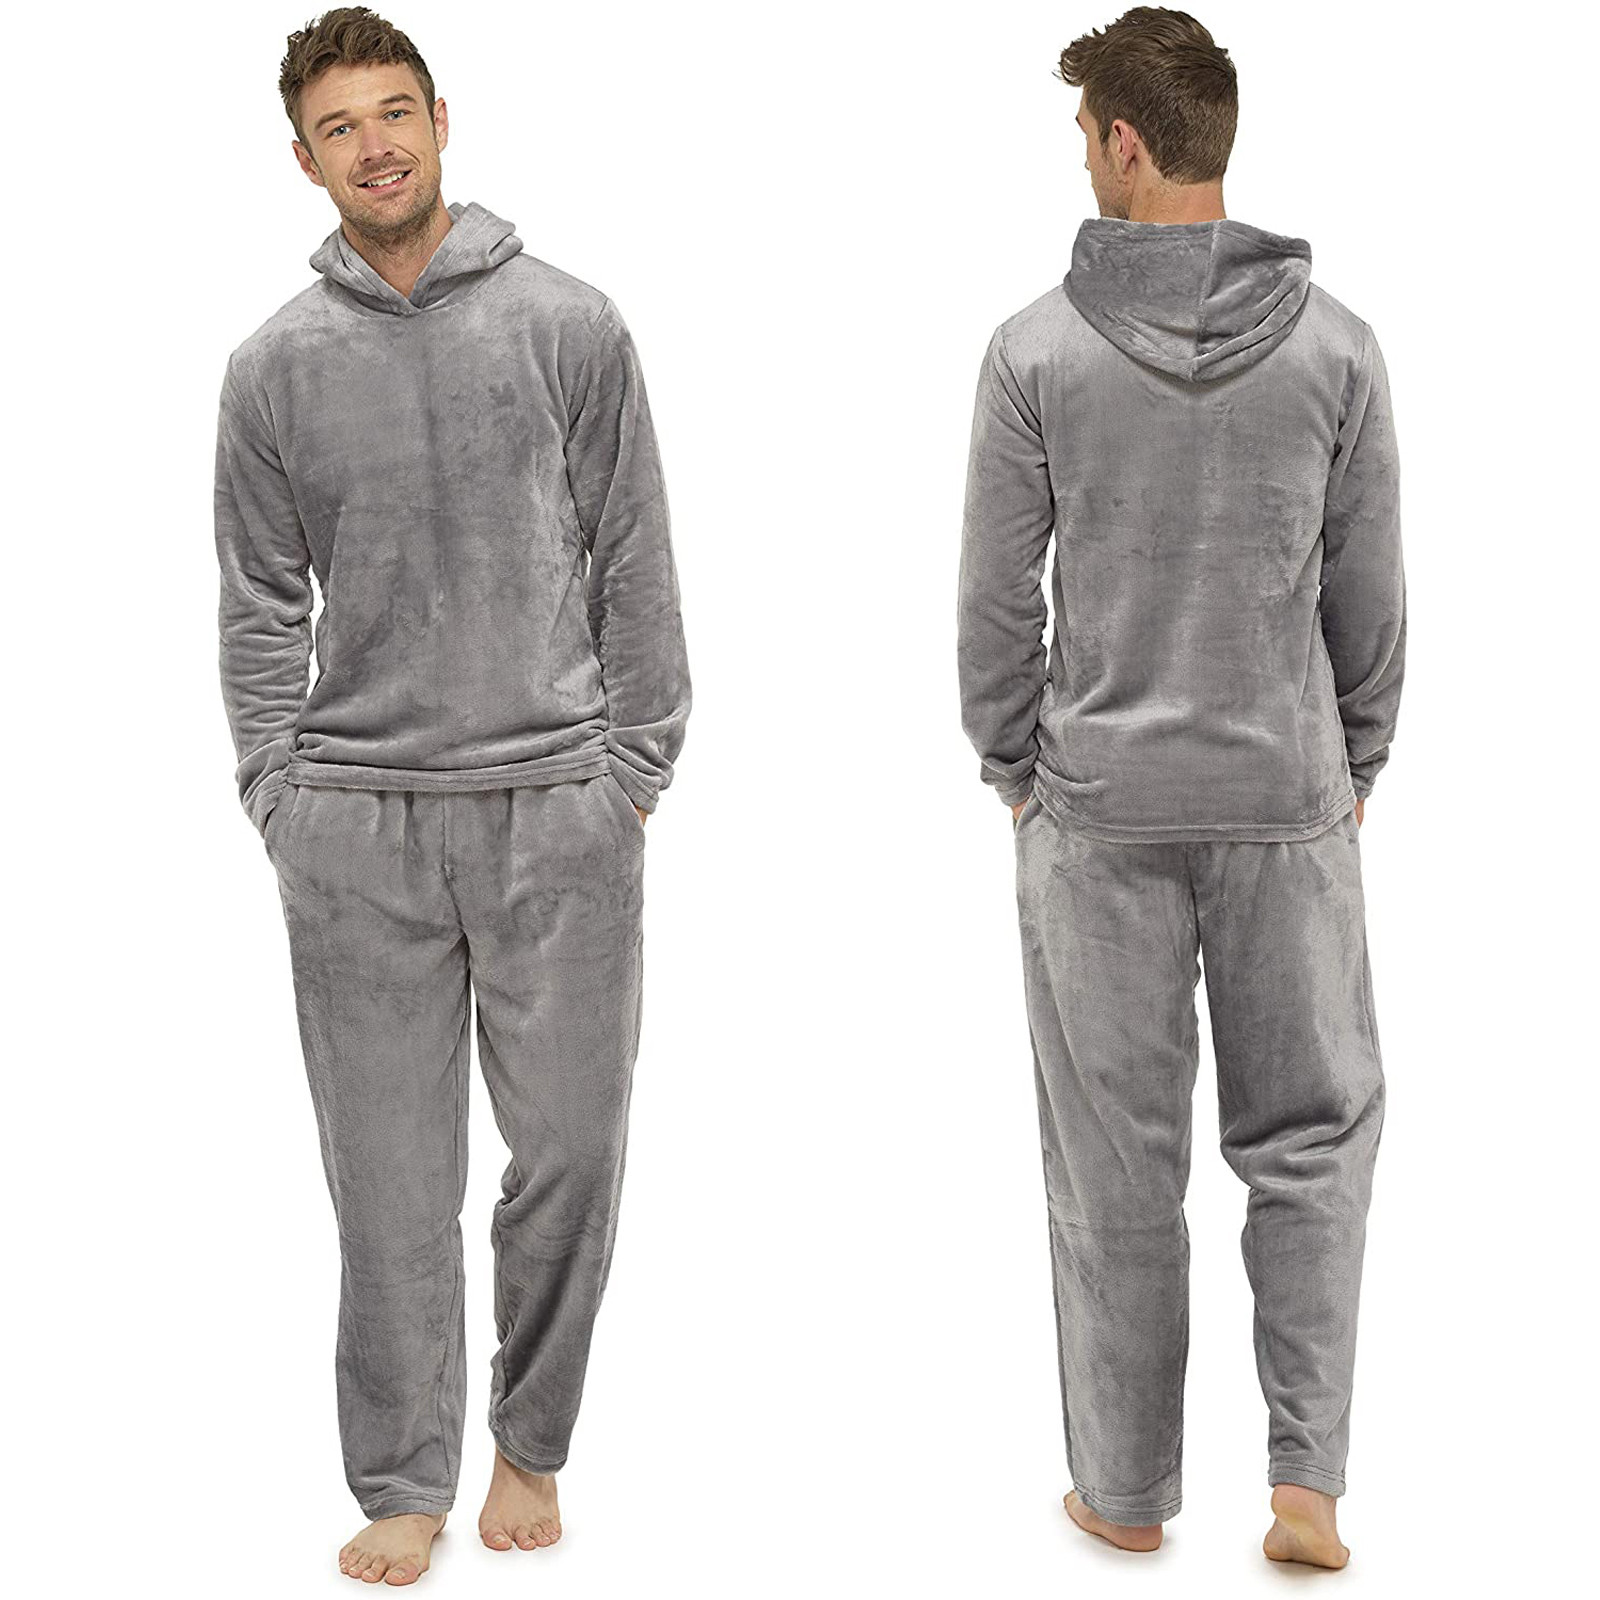 2021 New Warm Flannel Pajama Sets for Men Solid Hooded Sleepwear Pullover Tops Long Pant Suit Male Pyjamas Casual Home Clothes